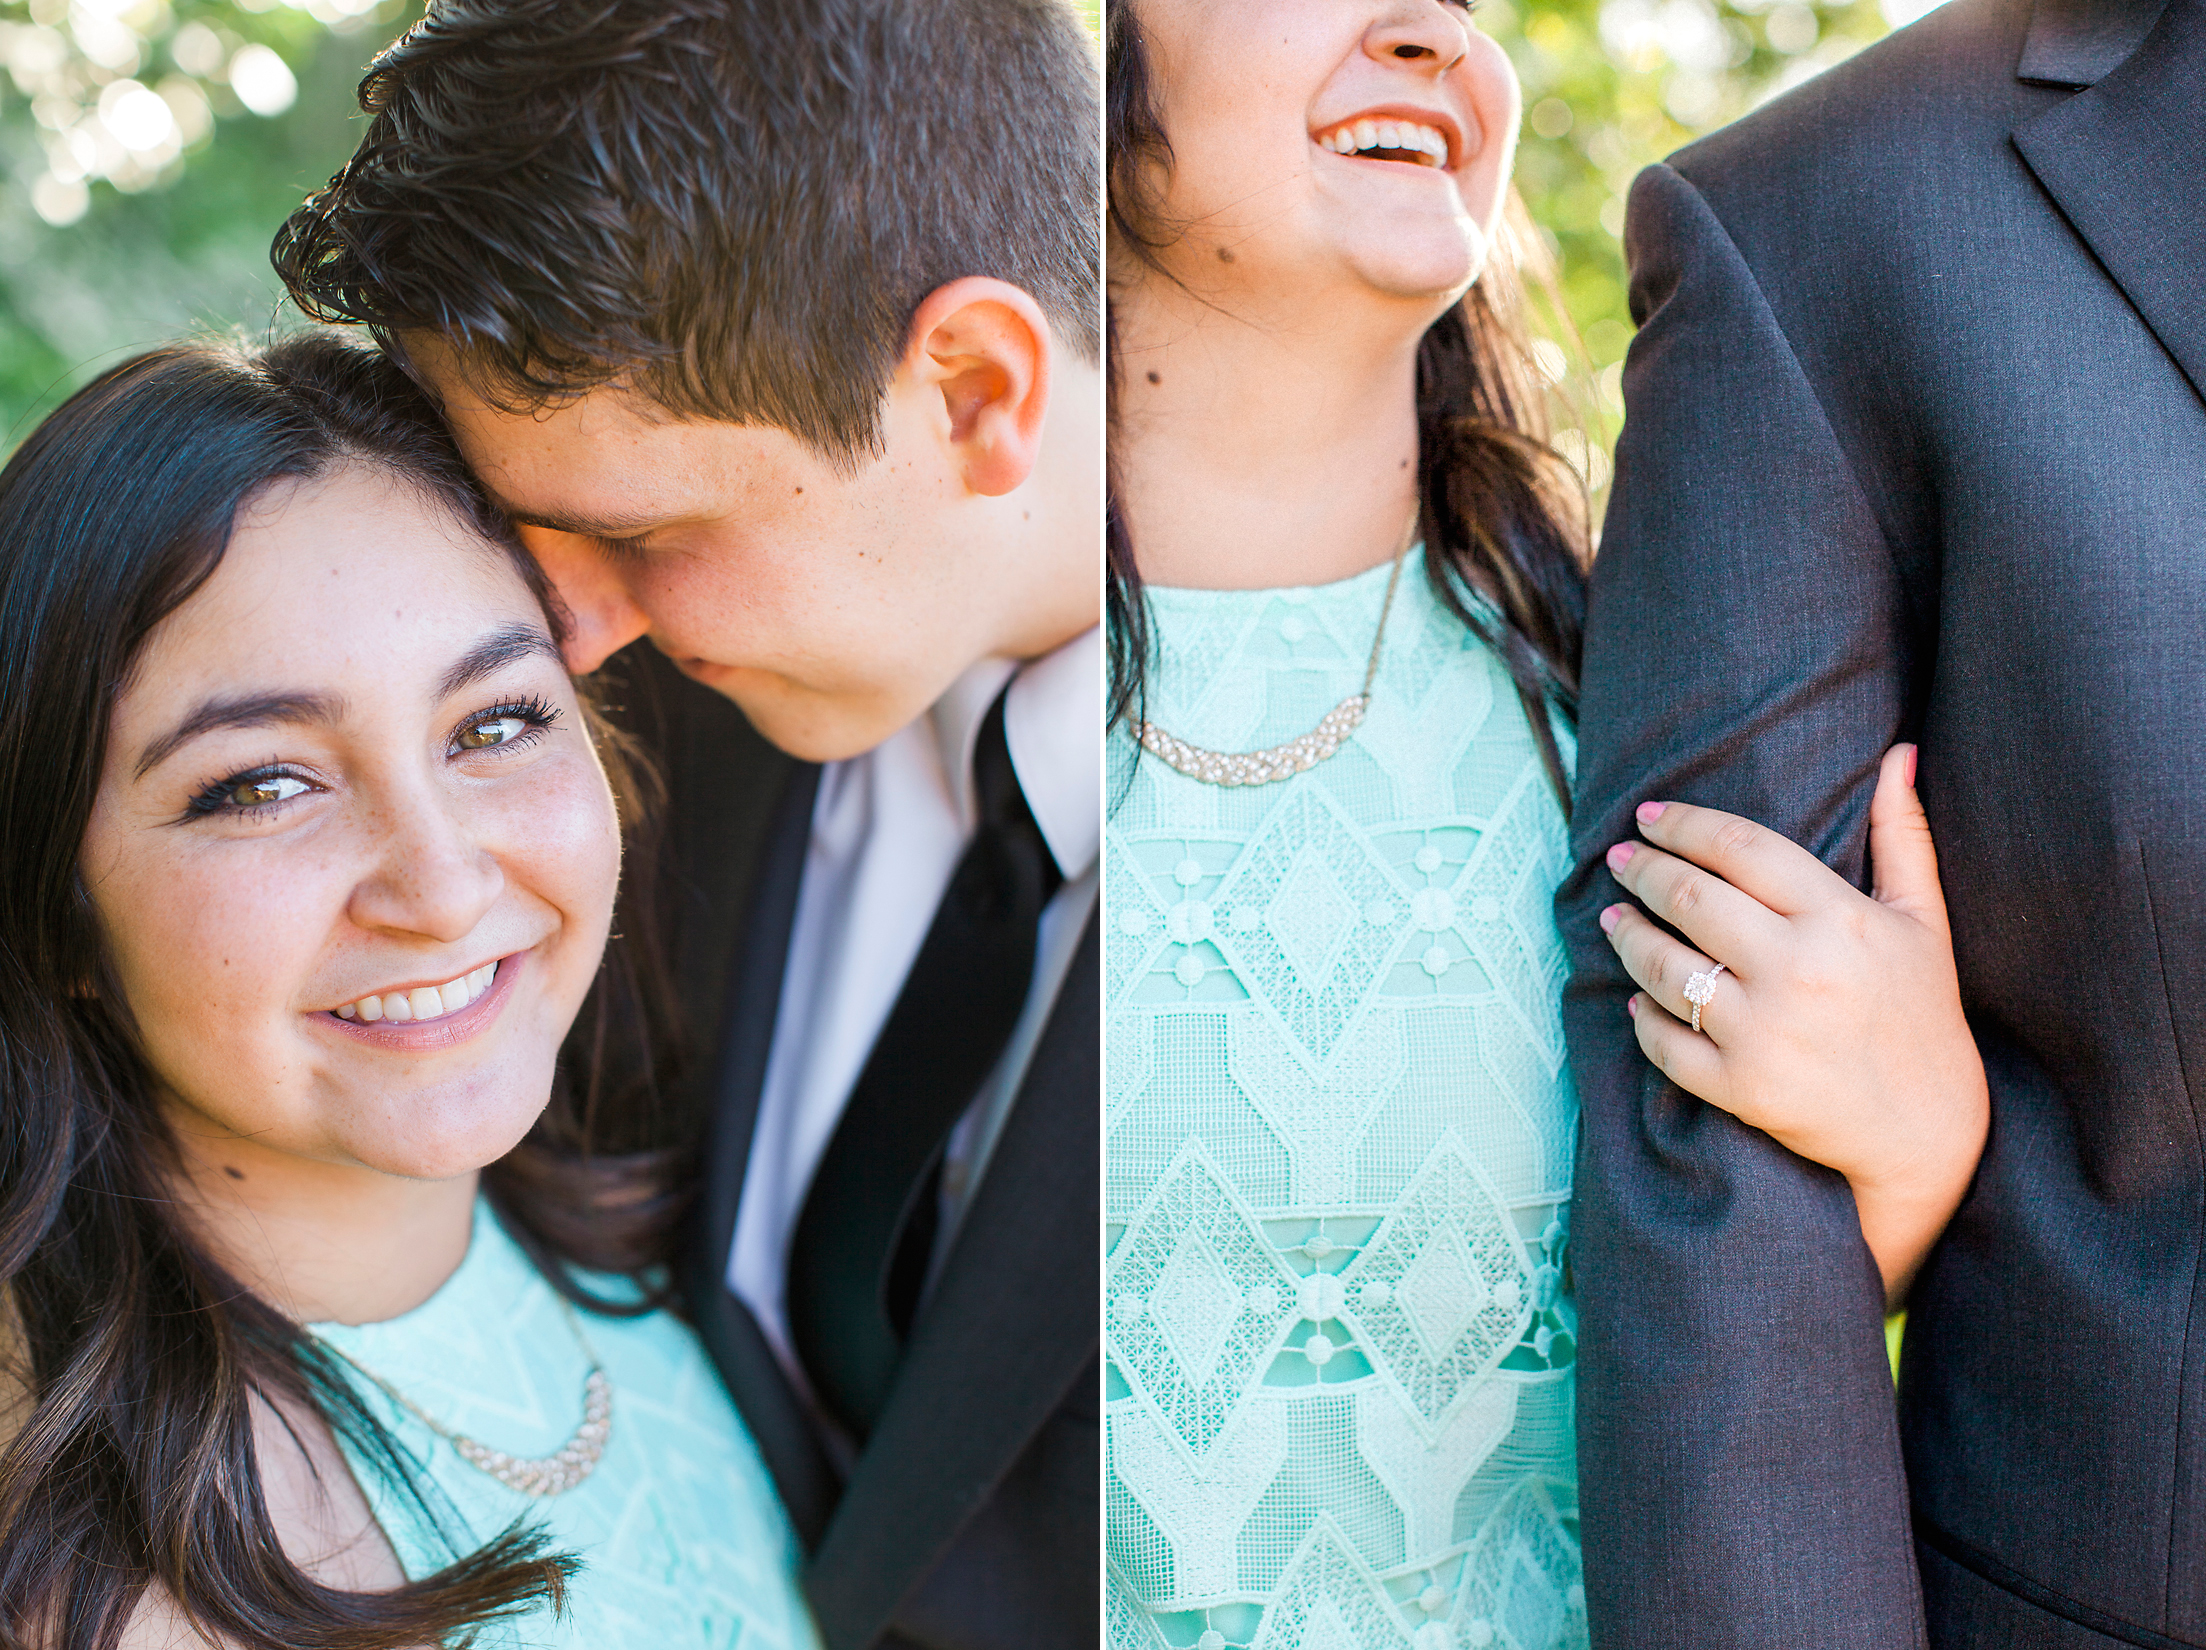 Proposal_bayarea_sanjose_wedding_engagement_nicolequiroz_nicole_quiroz_ring_13.jpg